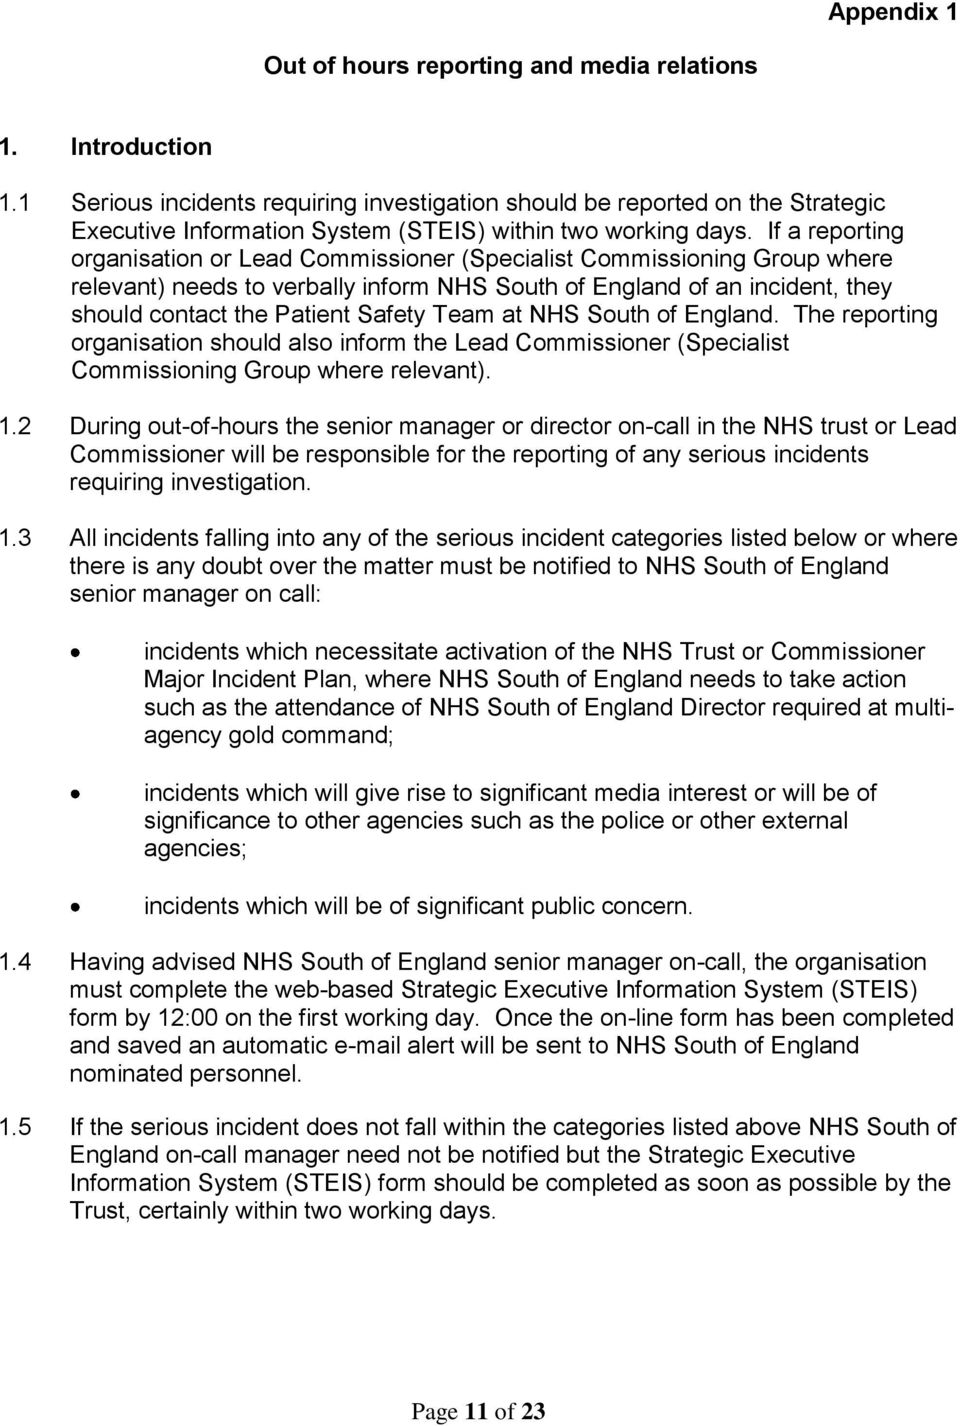 If a reporting organisation or Lead Commissioner (Specialist Commissioning Group where relevant) needs to verbally inform NHS South of England of an incident, they should contact the Patient Safety